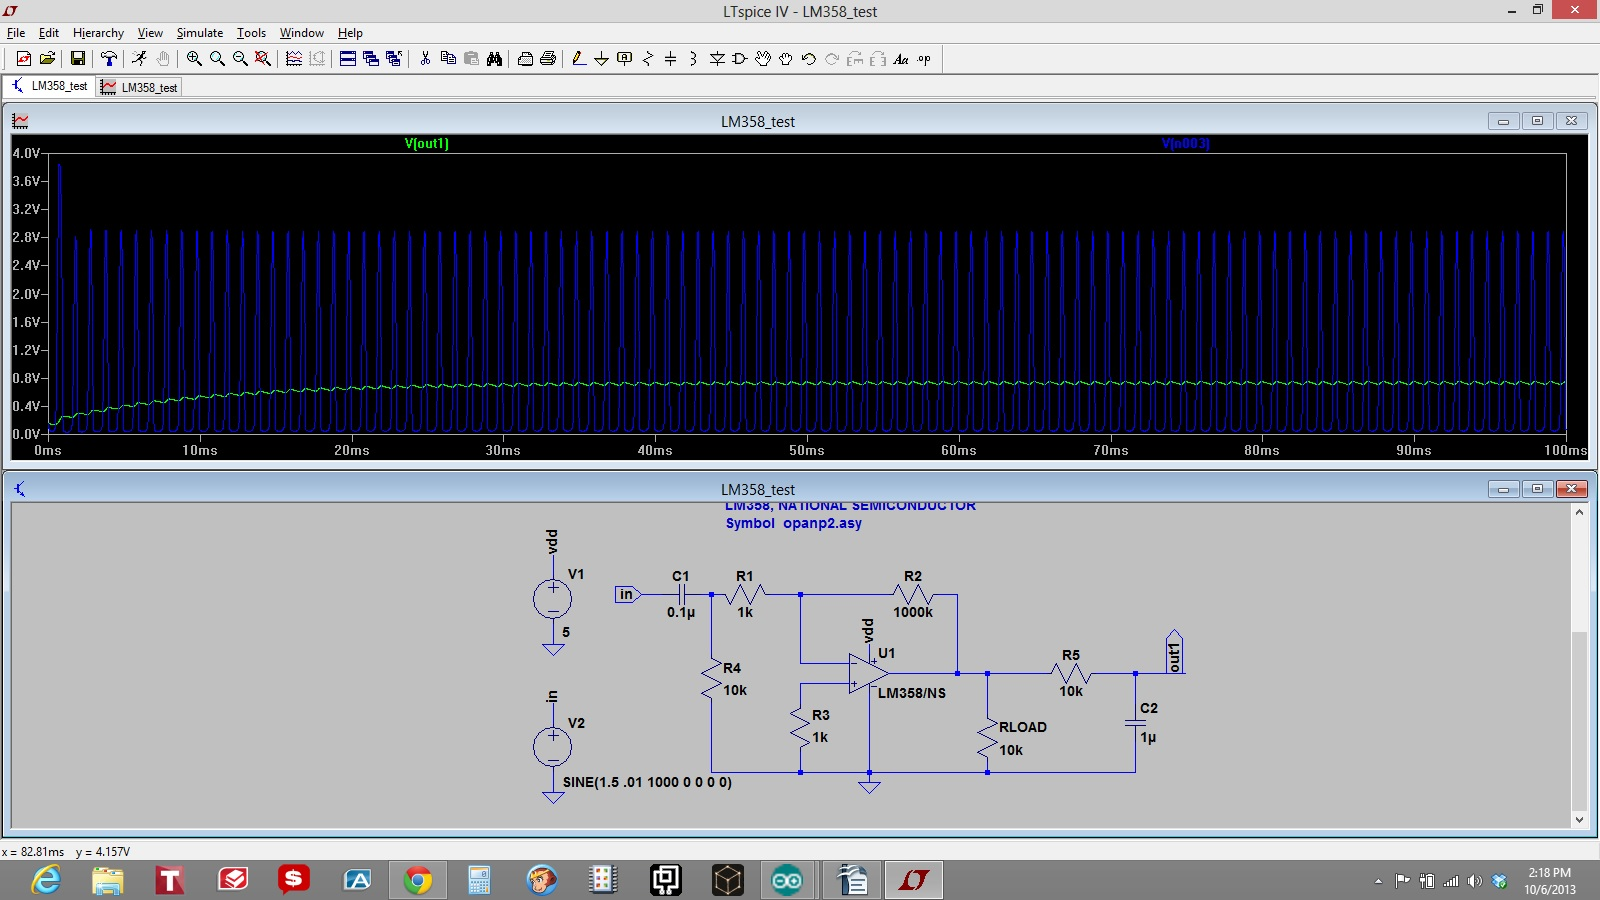 How To Make A Pre Amp For Electret Microphone Wiring 10mvpeak 1khz Sine Wave Offset 15v Simulate Rather Loud Sound In An Mic